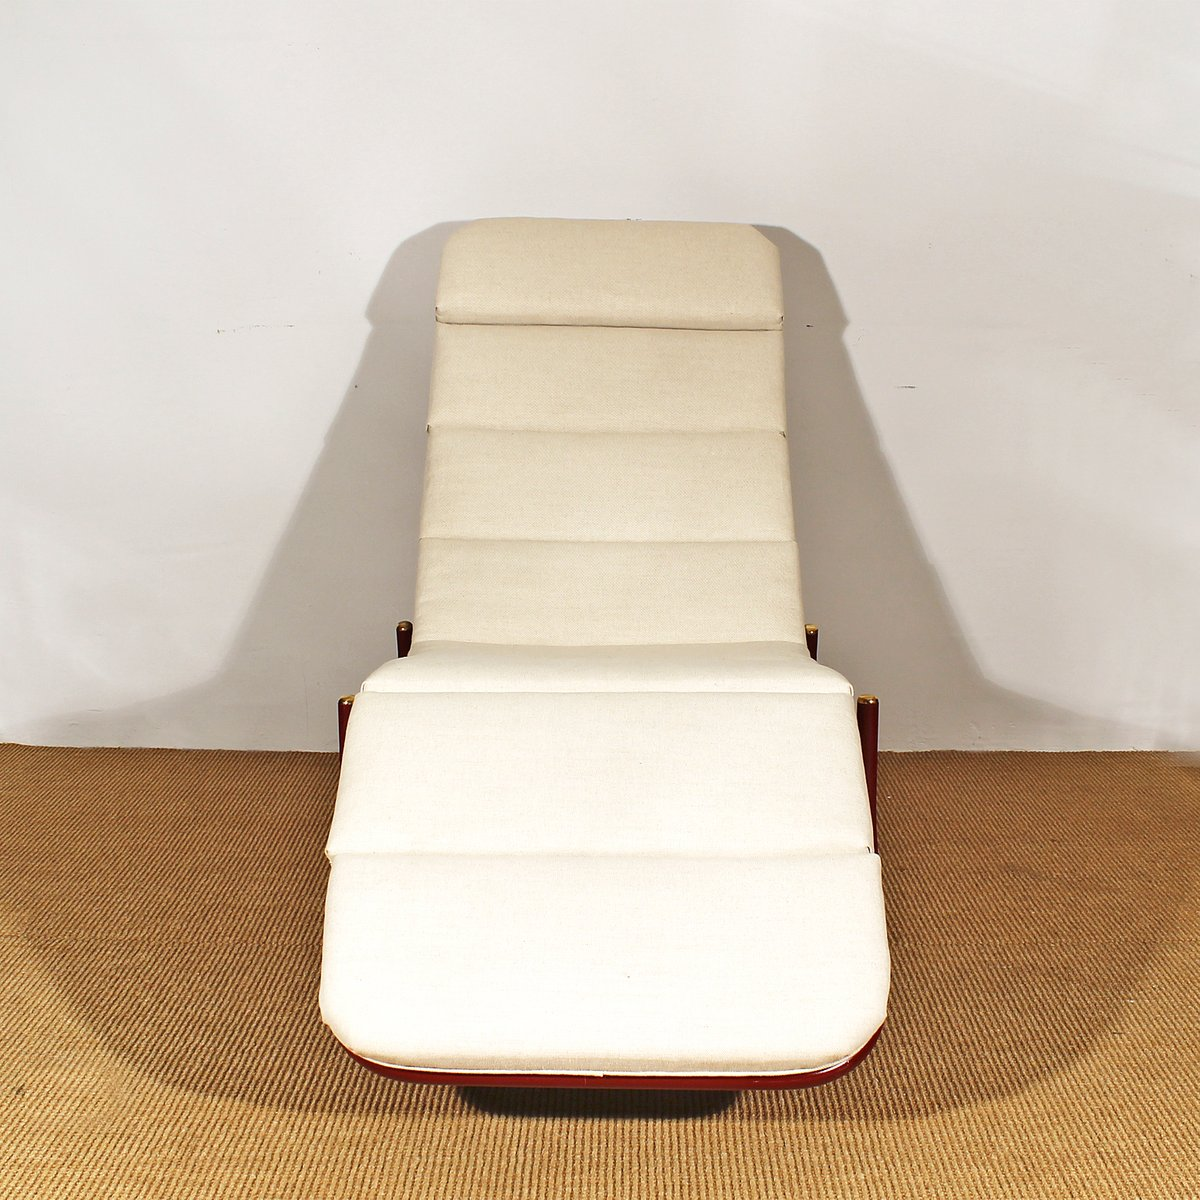 Vintage bauhaus style chaise longue 1920s for sale at pamono for Chaise longue sale